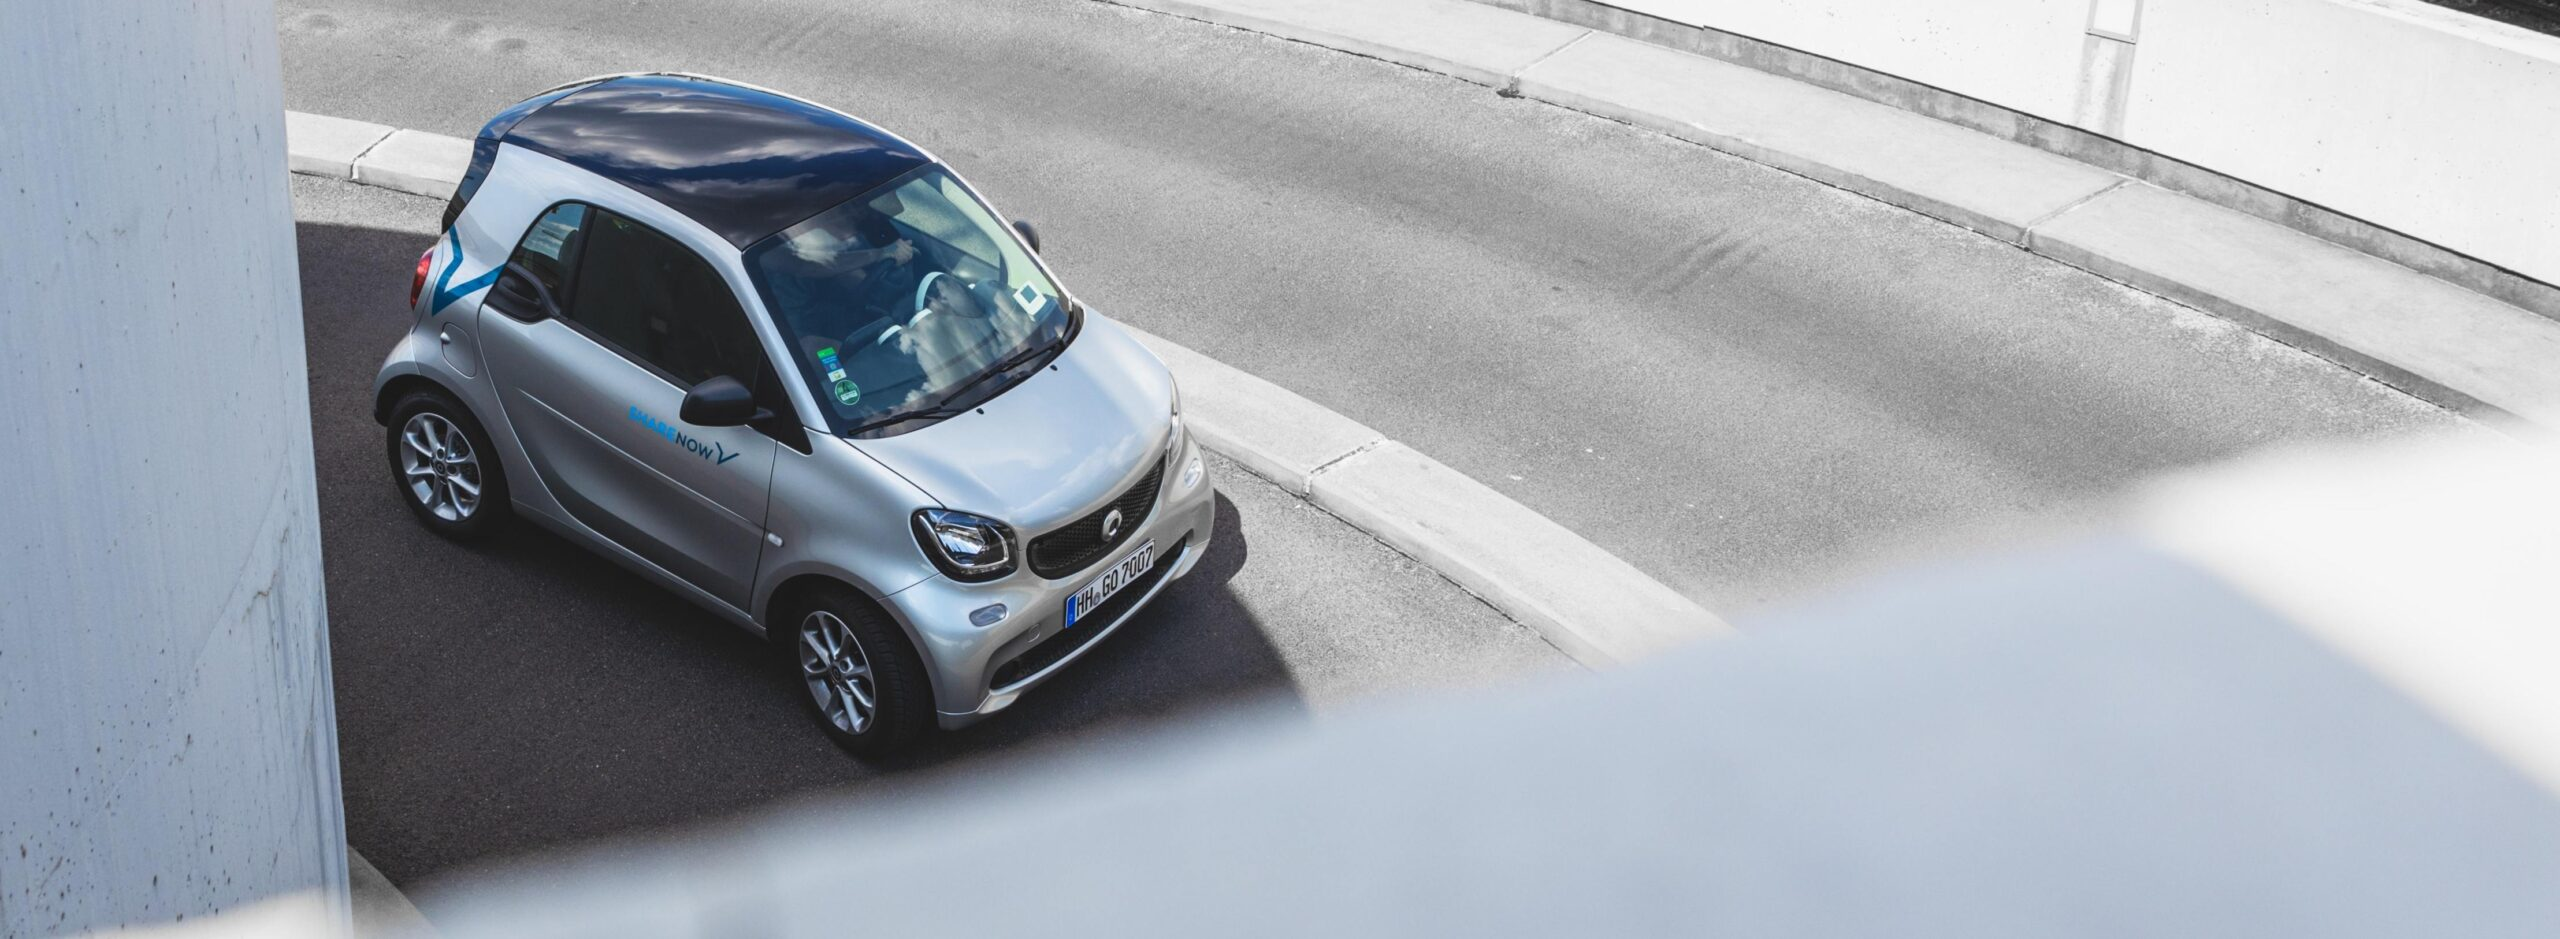 Car Sharing and electric cars may be the future of sustainable driving.